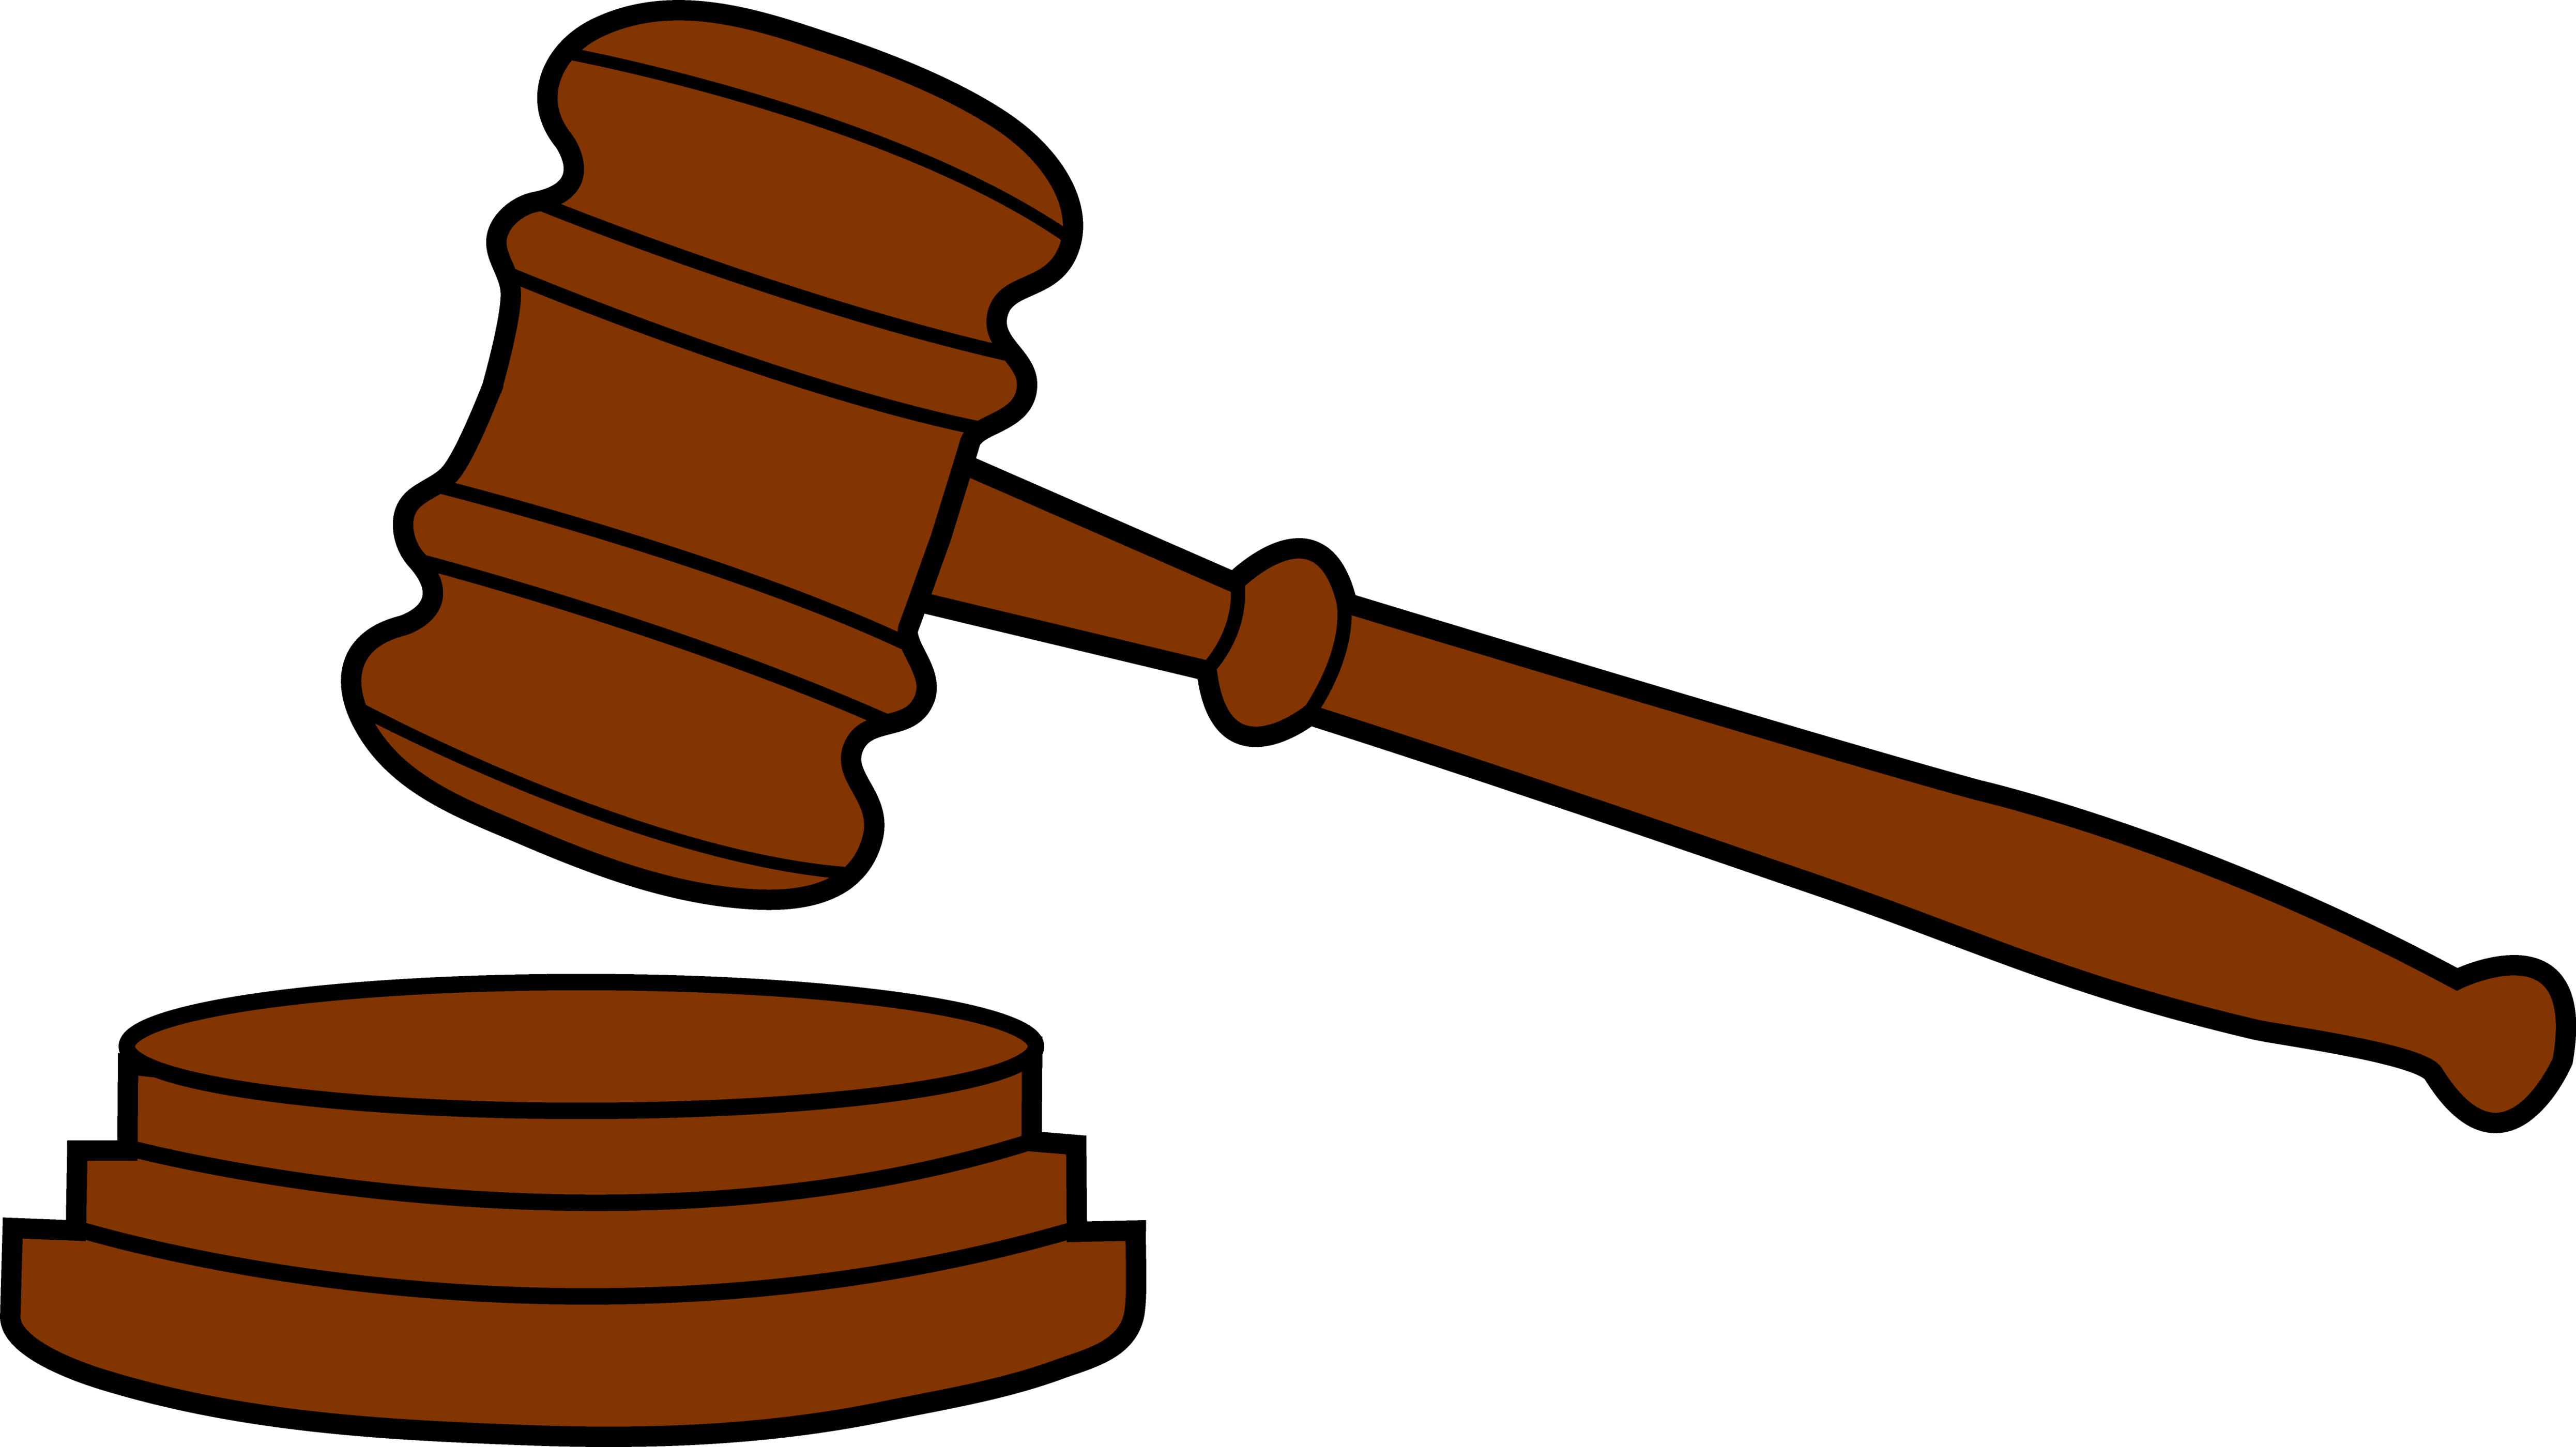 Legal clipart lawyer tool, Legal lawyer tool Transparent.